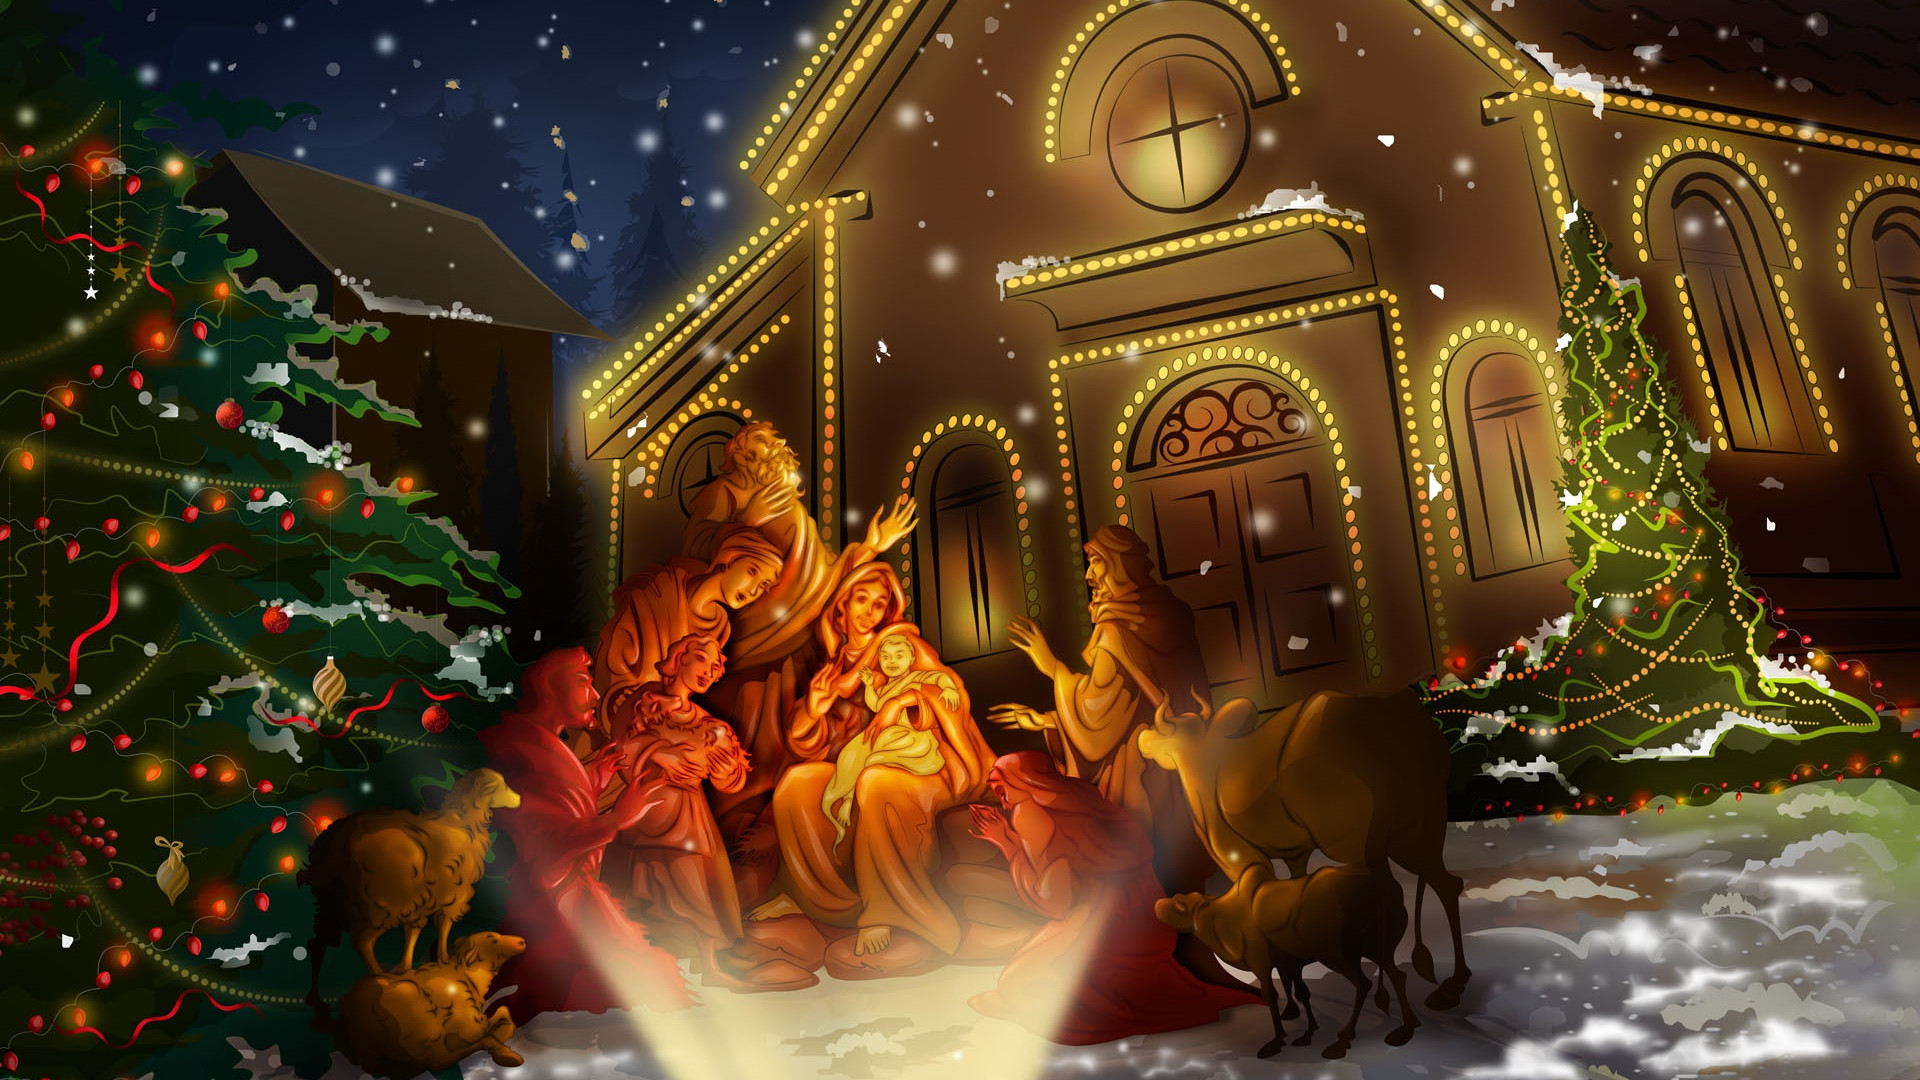 Hd Christmas Wallpaper.Christmas Wallpapers Computer 62 Background Pictures